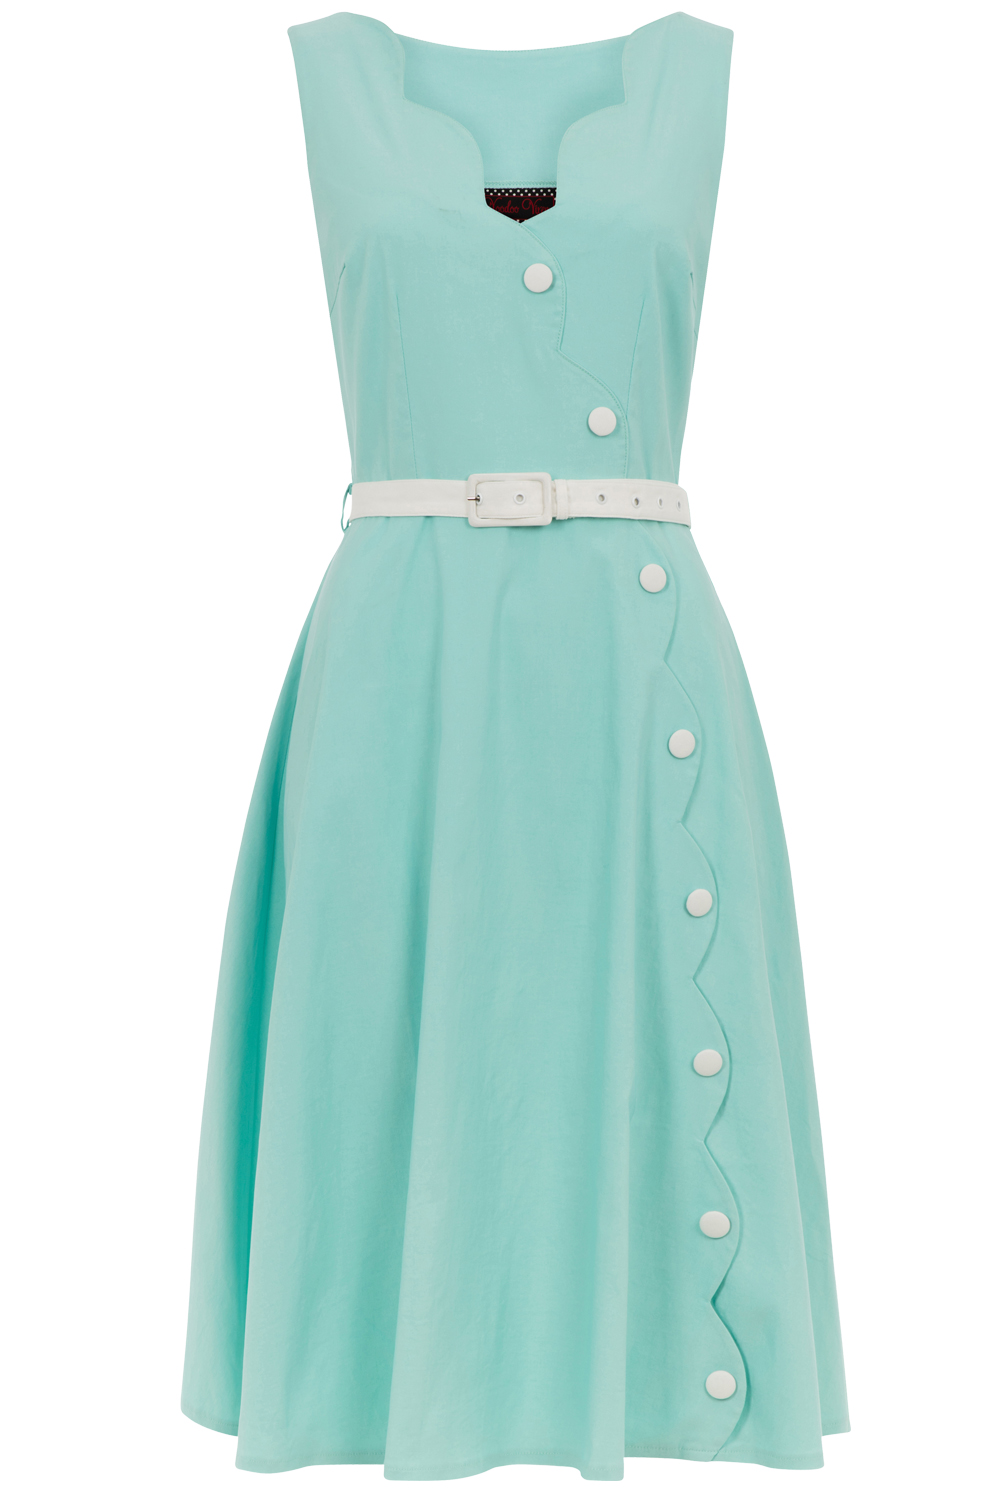 Voodoo Vixen Mint Nettie Dress